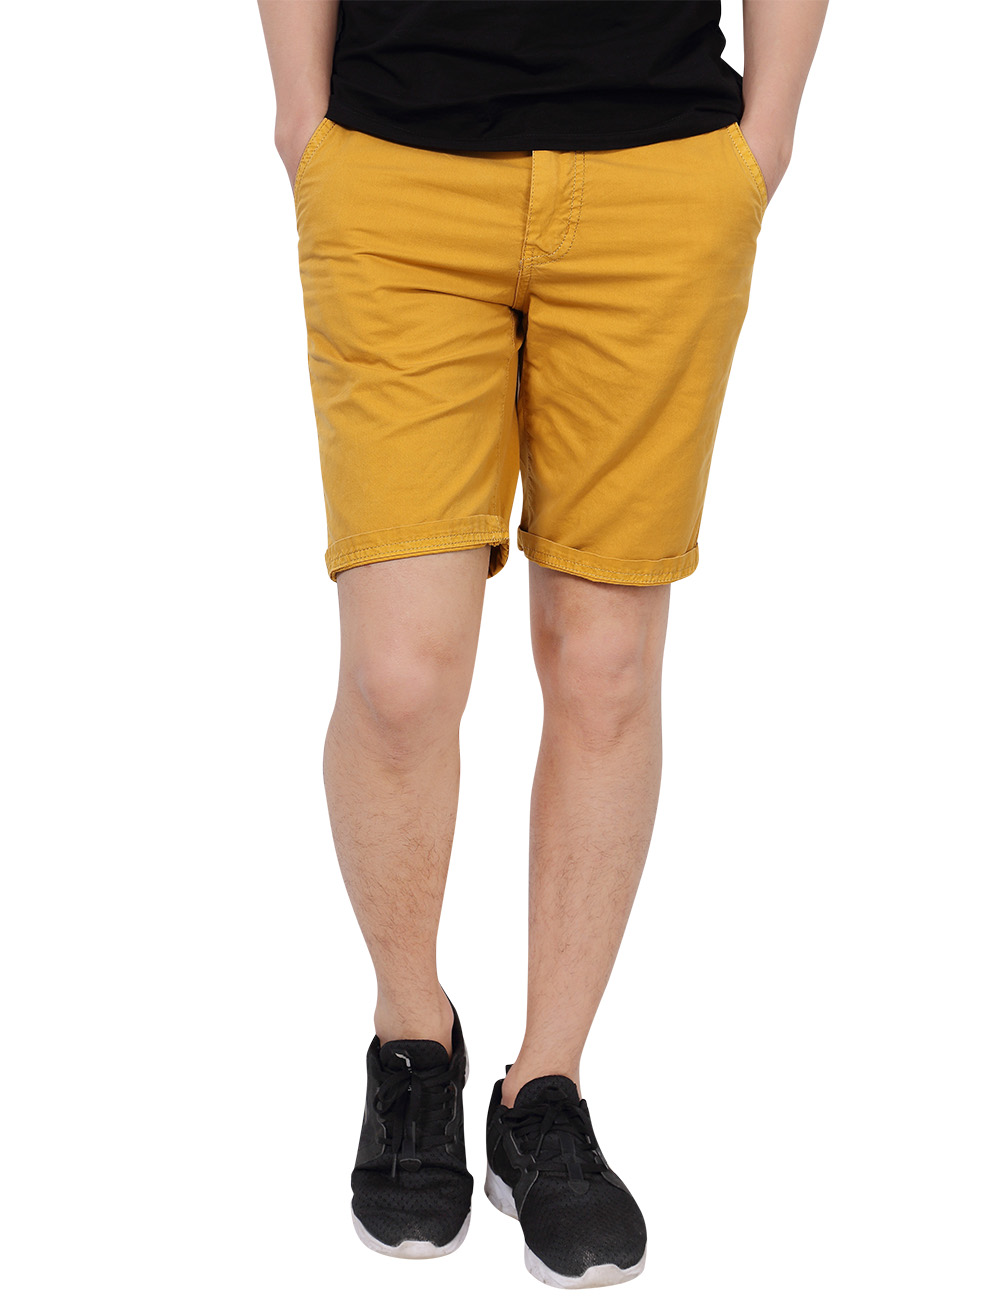 [US Direct] Yong Horse Men's Cotton Straight Classic Fit Casual Shorts with Pockets